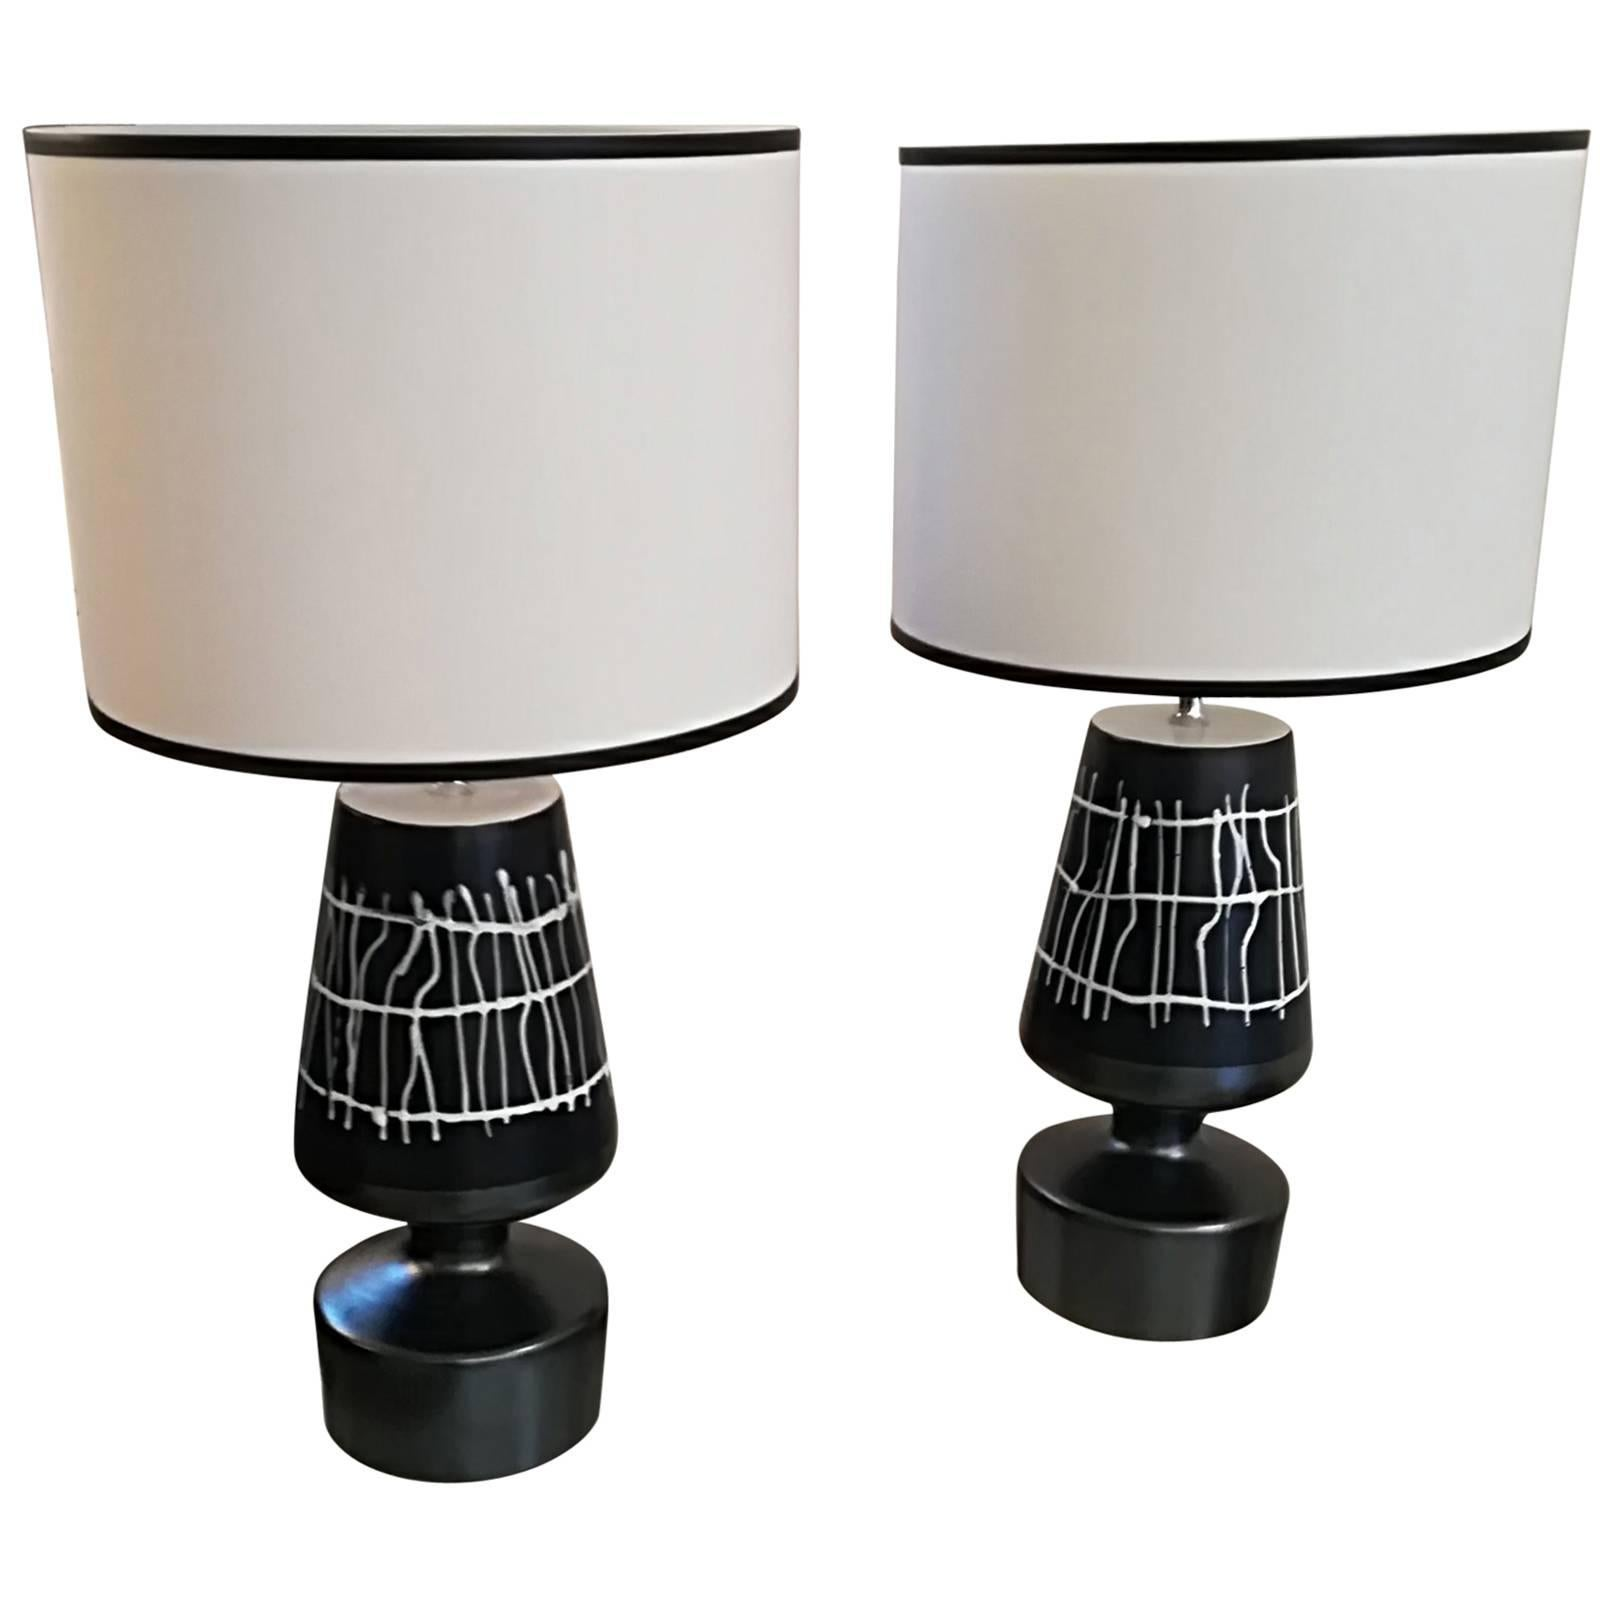 Pair of French Ceramic Table Lamps